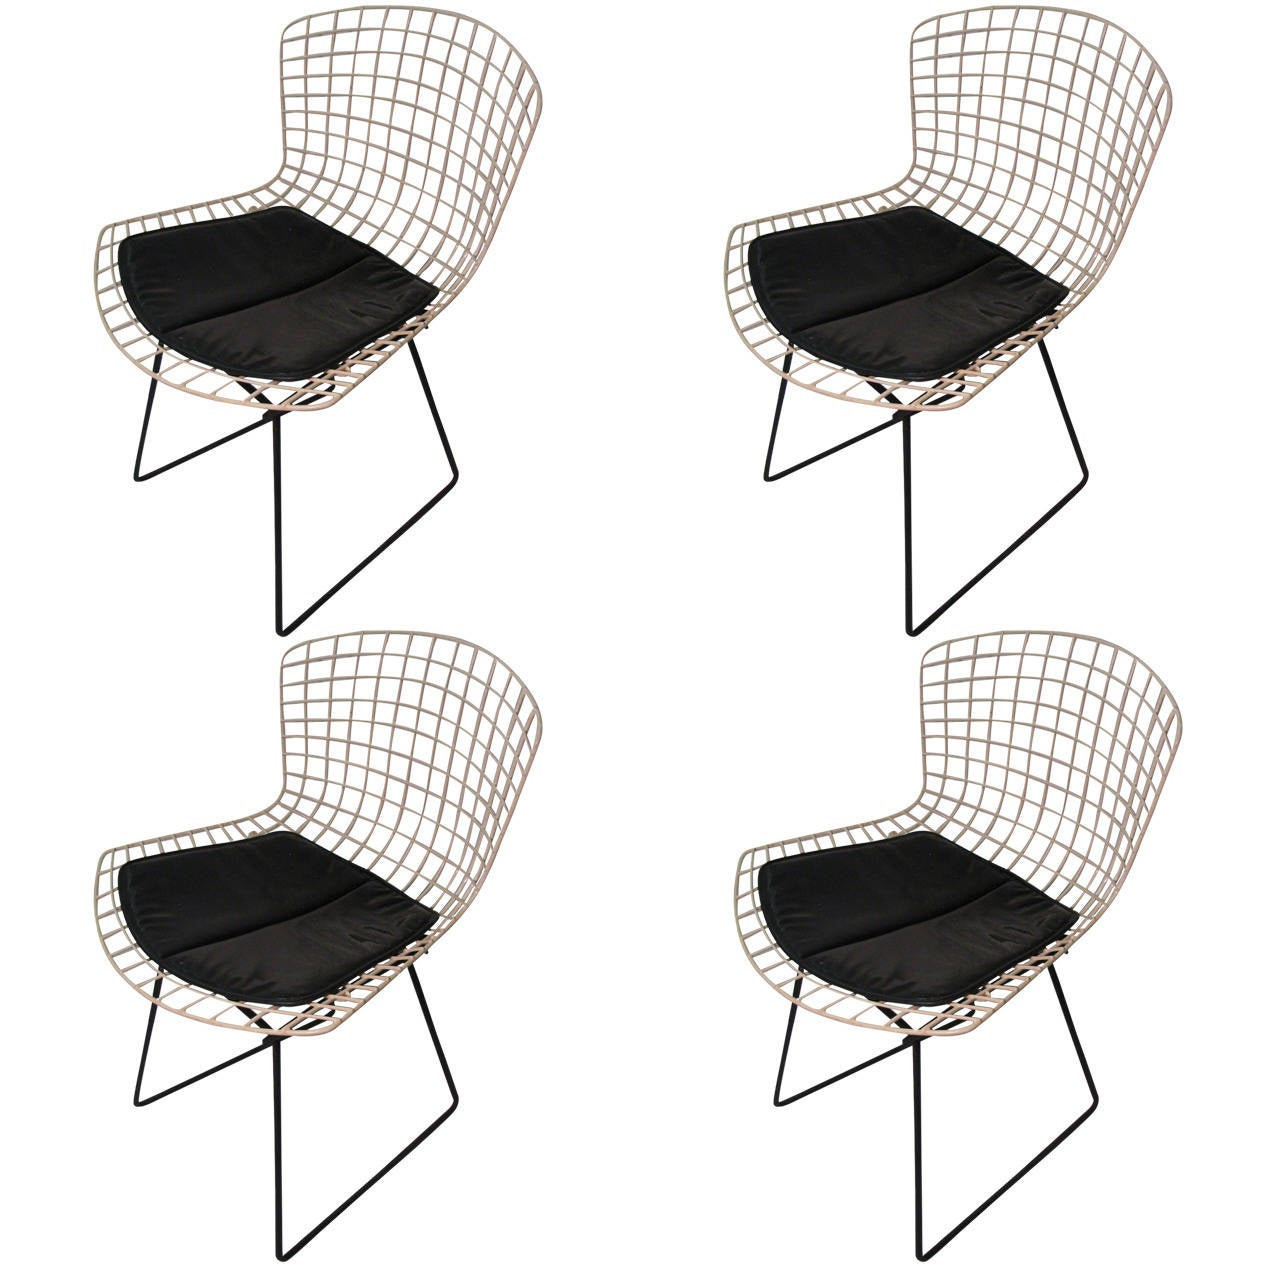 Harry Bertoia For Knoll Diamond Lounge Chairs, Pair At 1stdibs